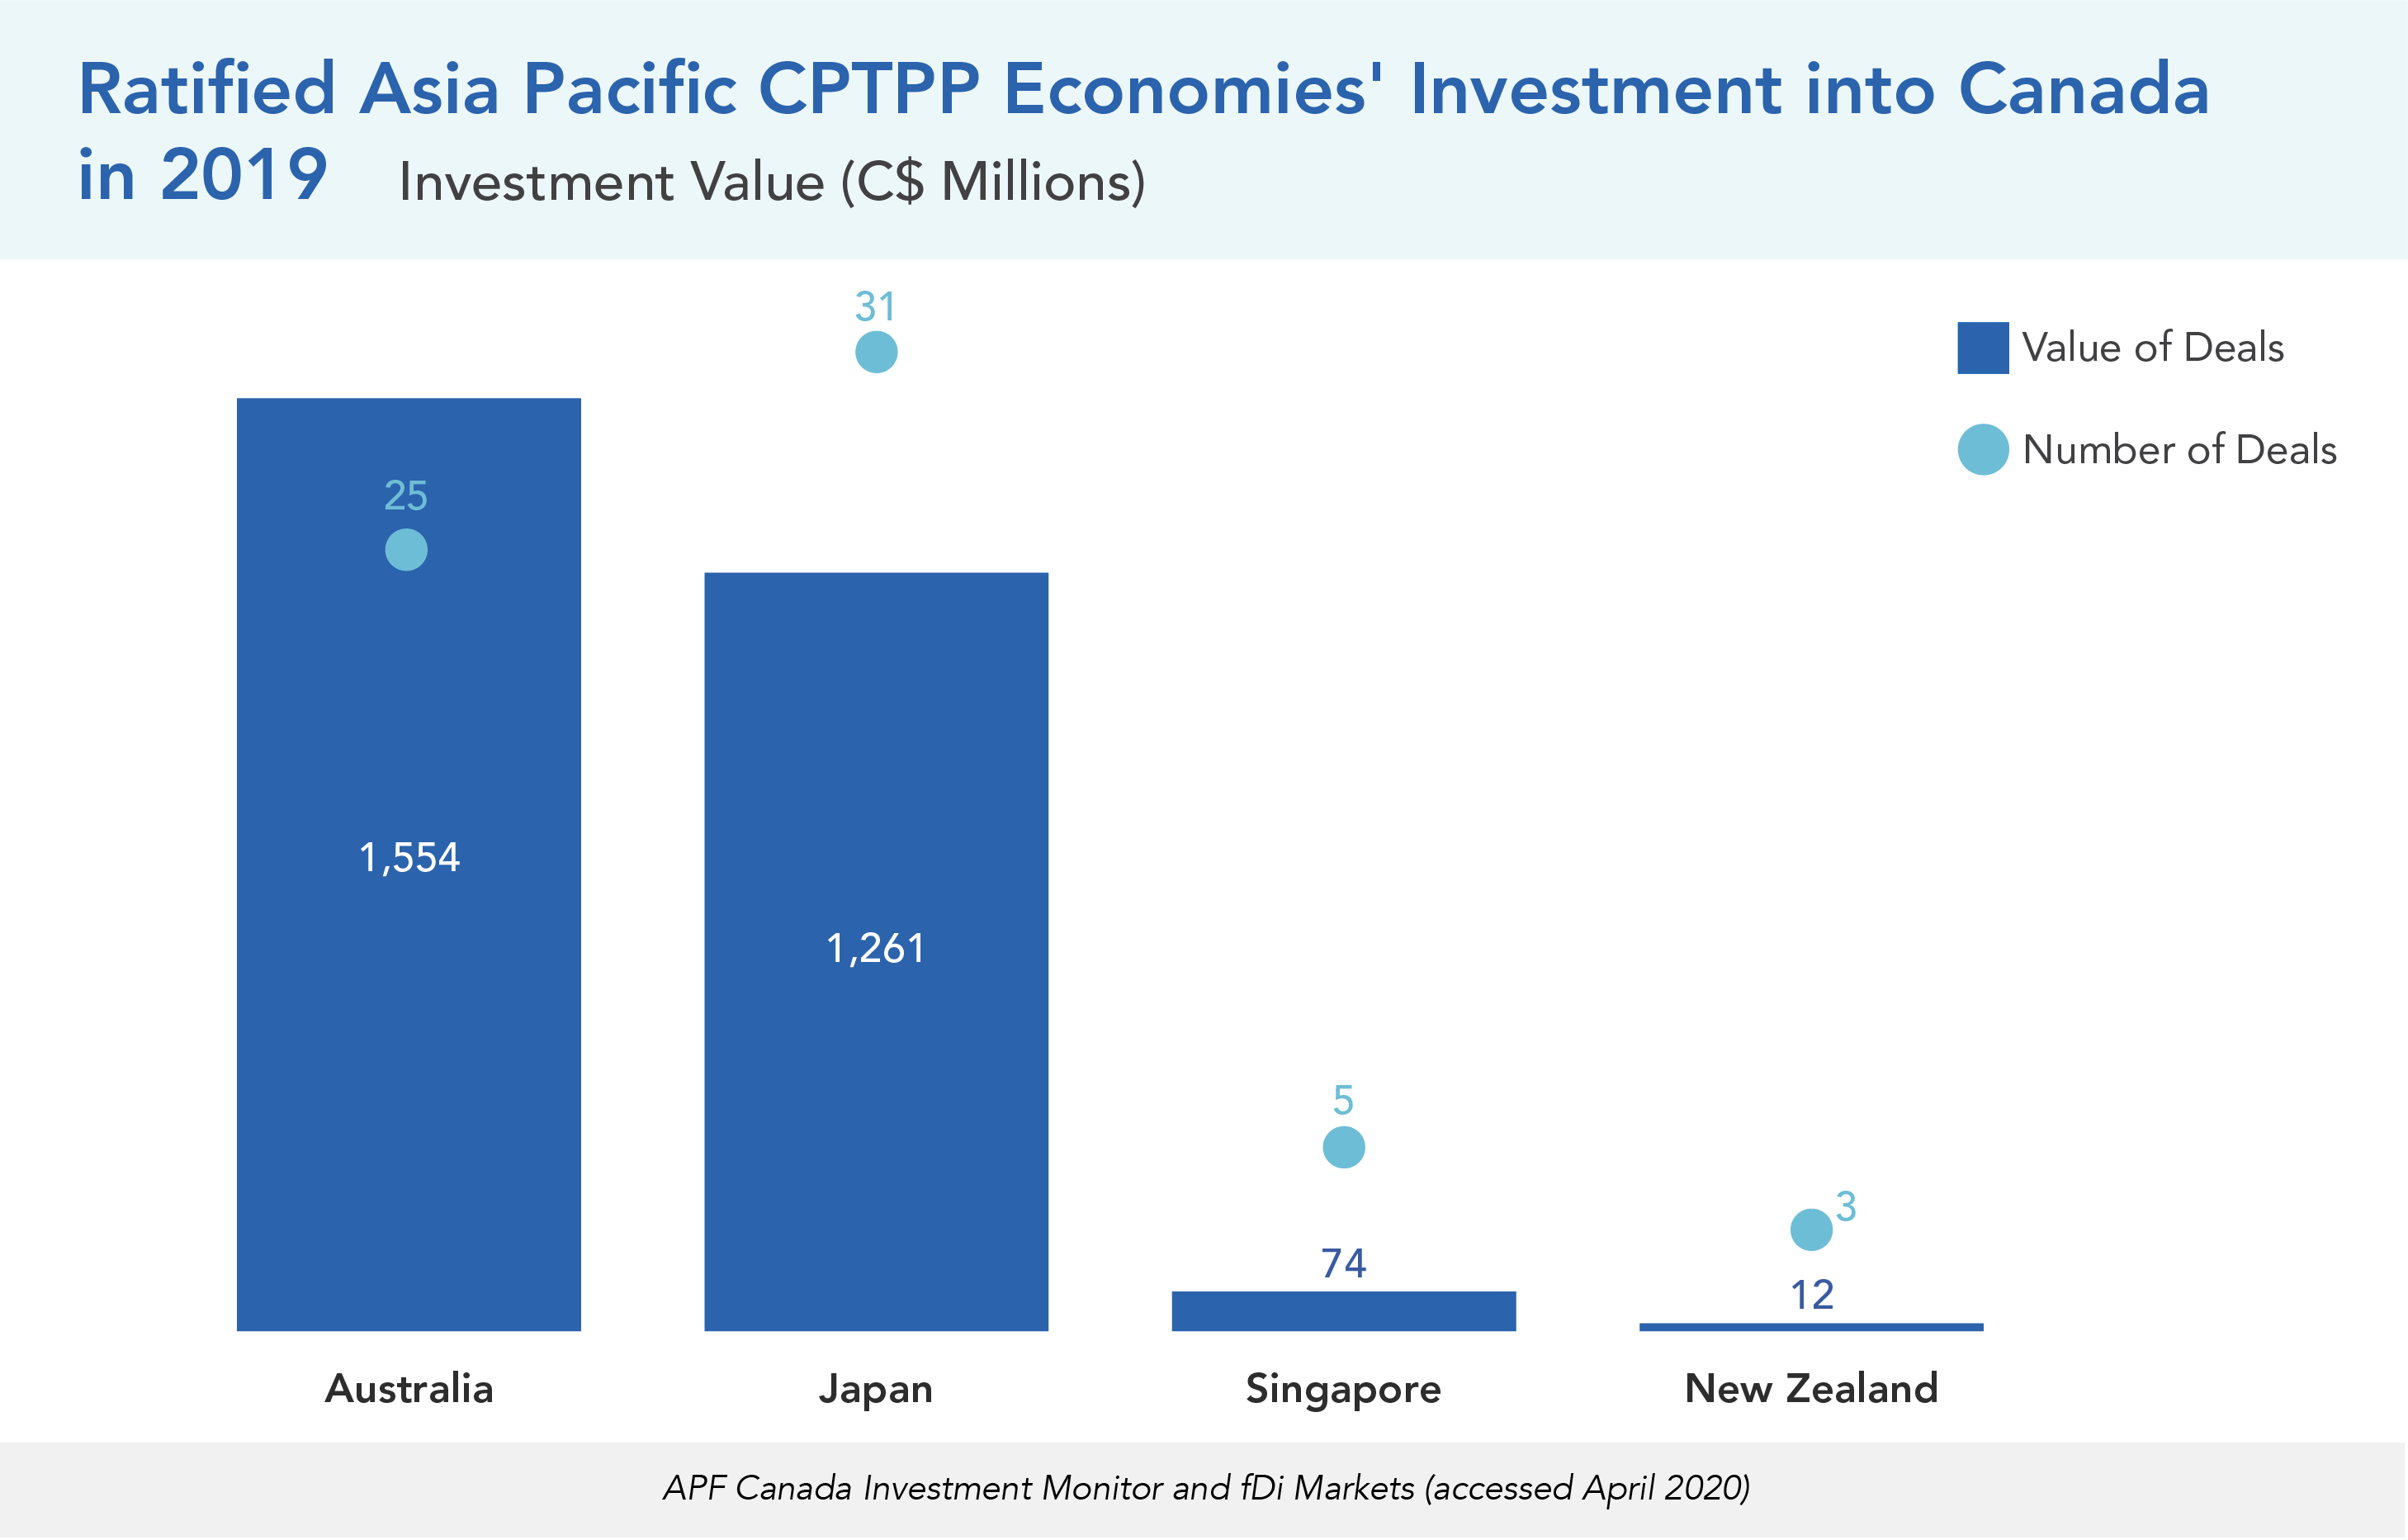 Ratified Asia Pacific CPTPP Economies' Investment into Canada in 2019